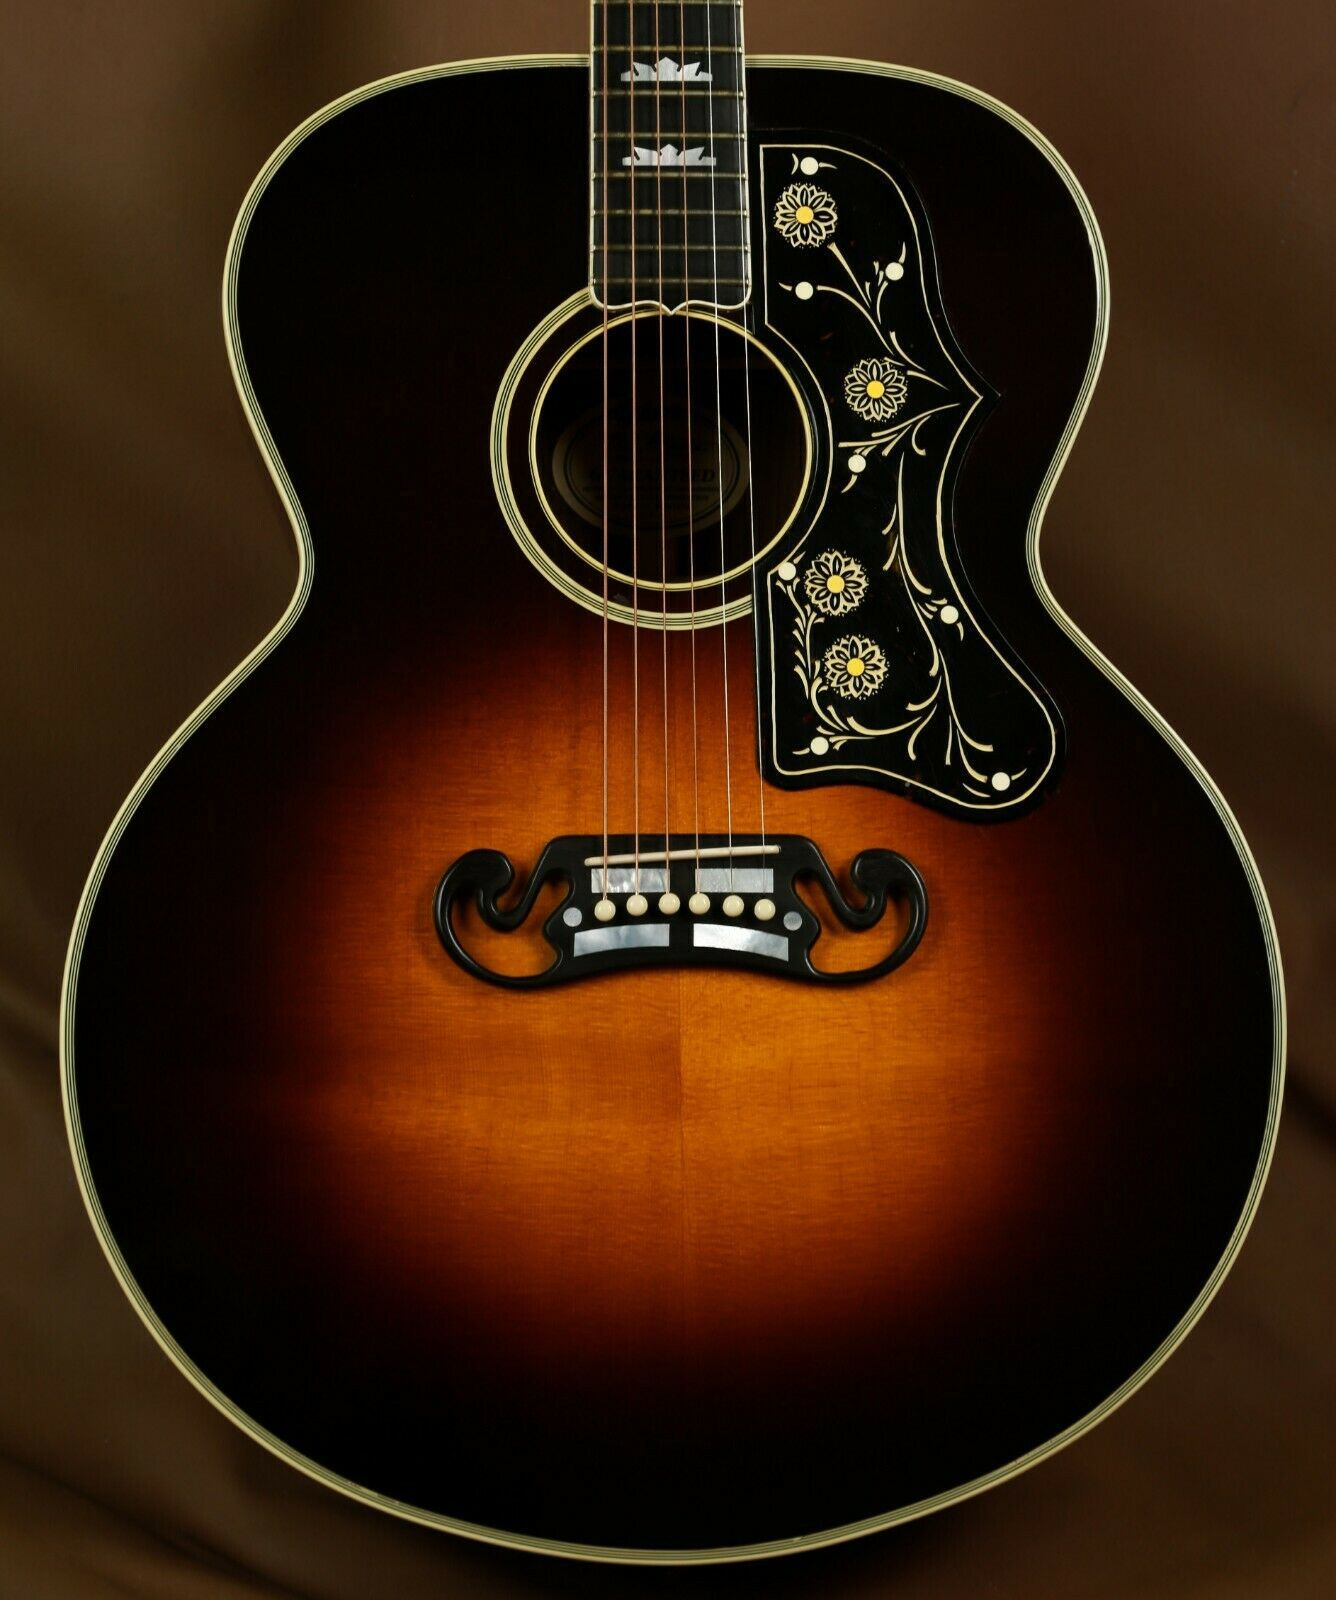 1992 Gibson Ren Ferguson 1938 Sj 200 Brazilian Custom Acoustic Guitar In 2020 Custom Acoustic Guitars Guitar Acoustic Guitar Prices